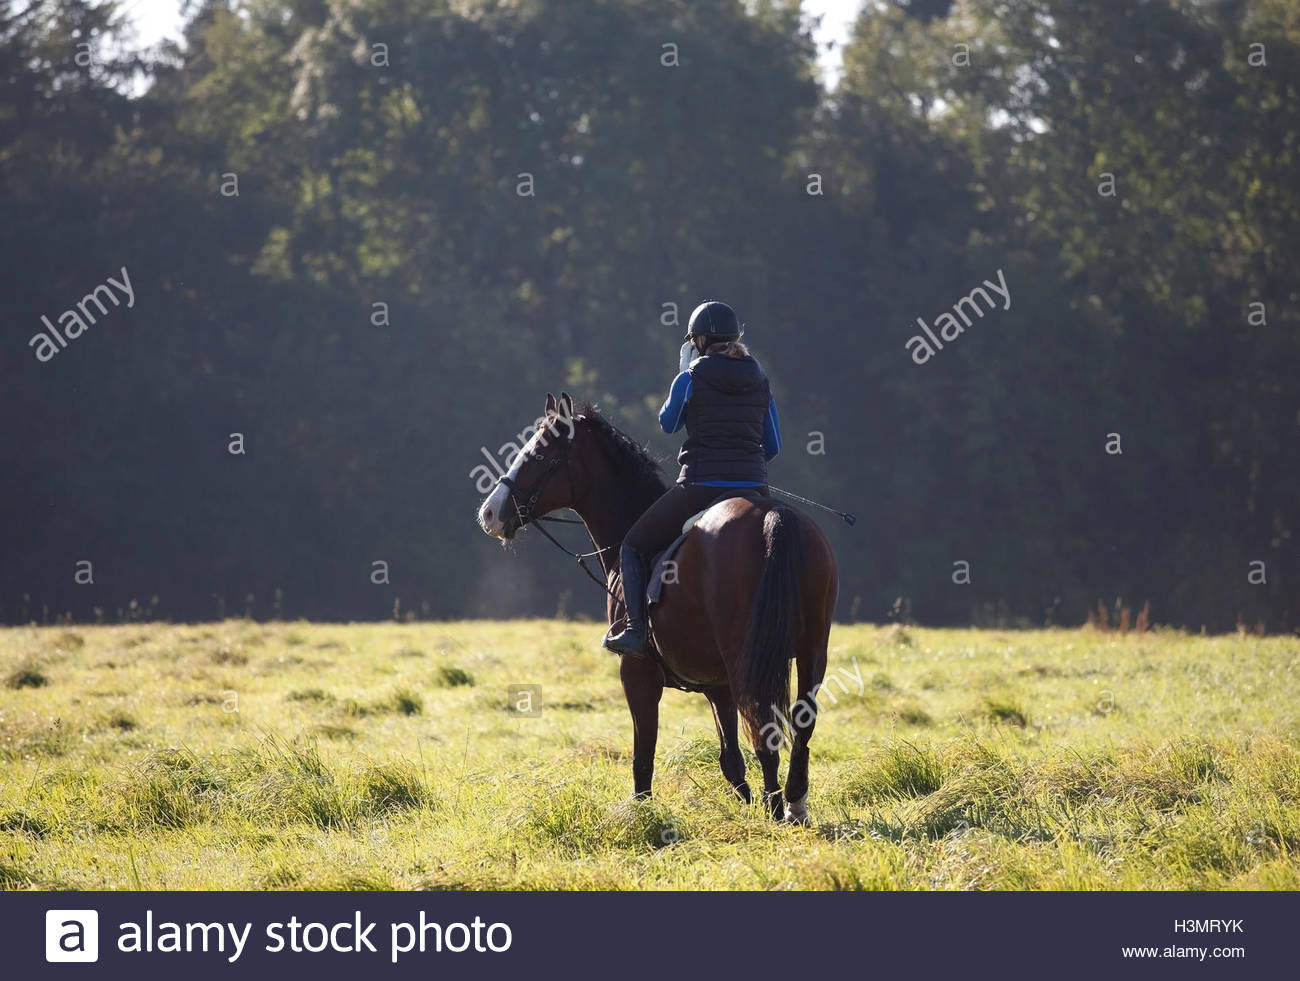 Young woman riding her horse in an open field UK - Stock Image